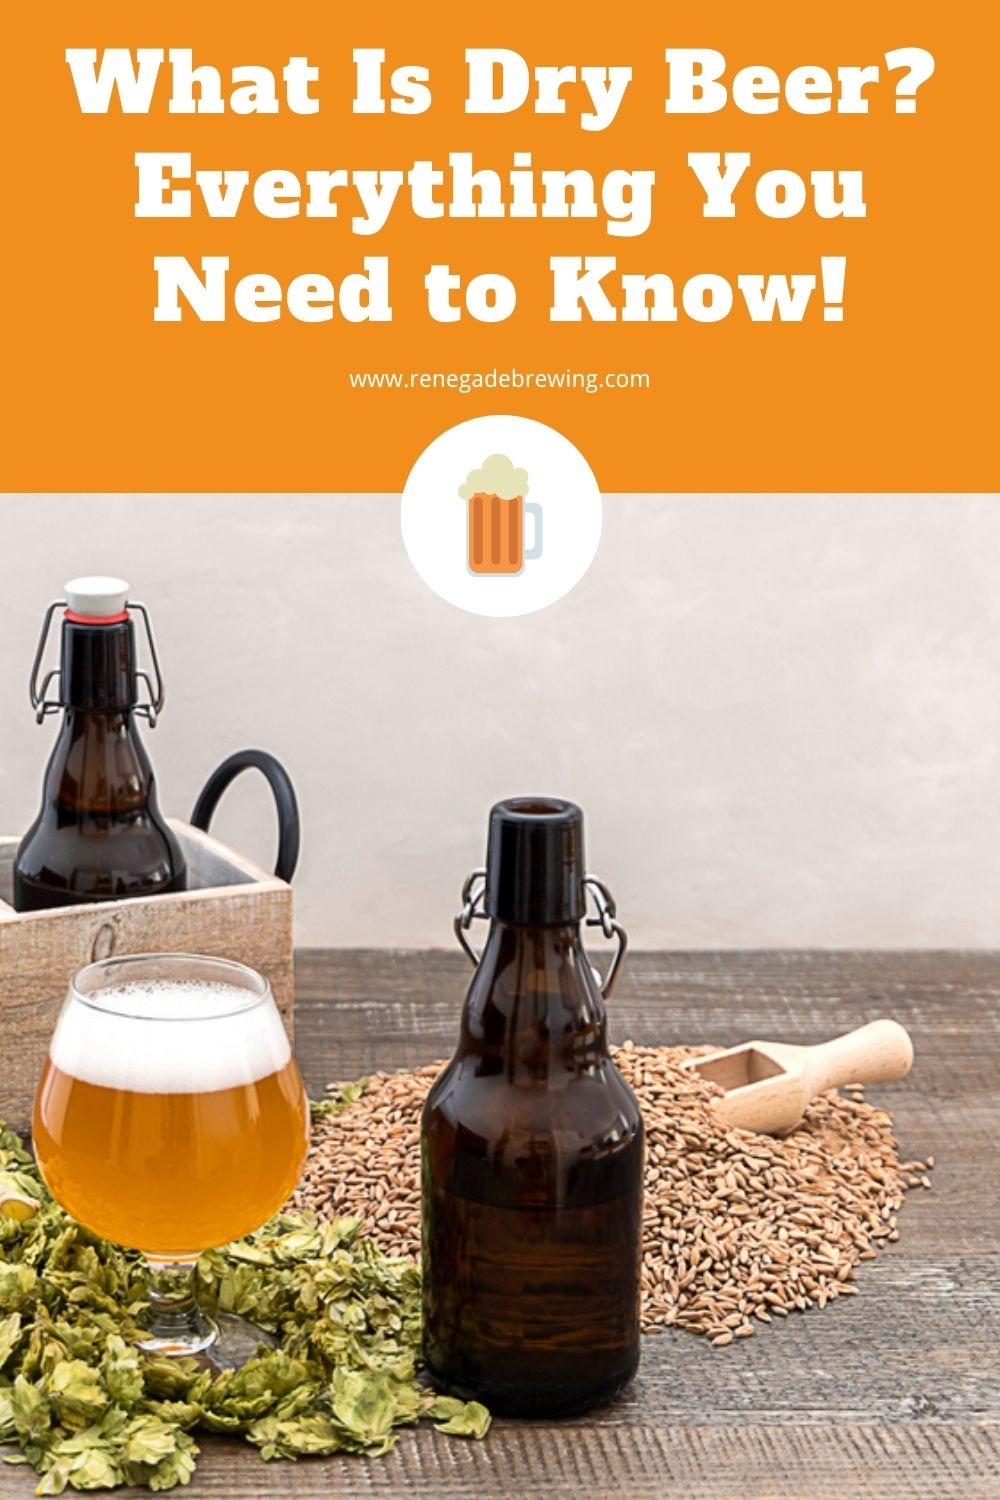 What Is Dry Beer Everything You Need to Know! 1